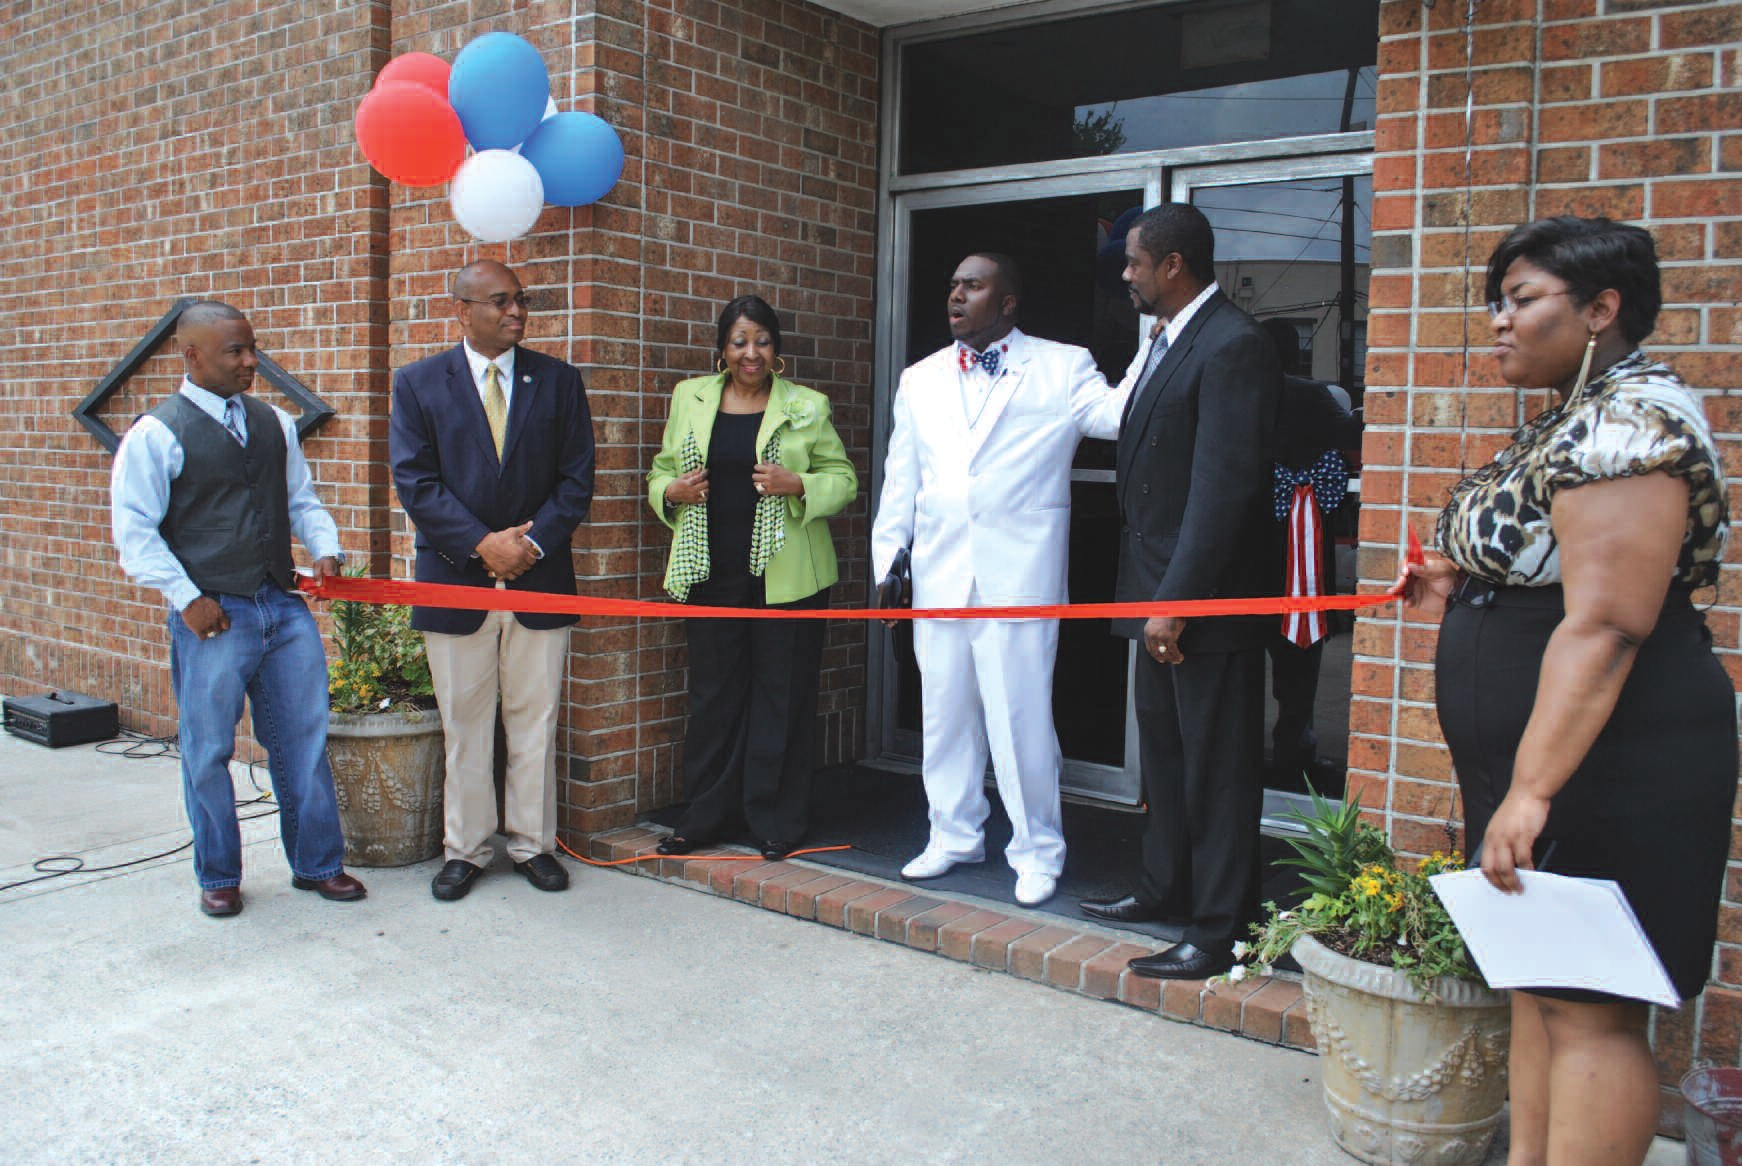 CEO and Founder Herbert Goodwin shown with Mayor Jackson and others at ribbon-cutting ceremony